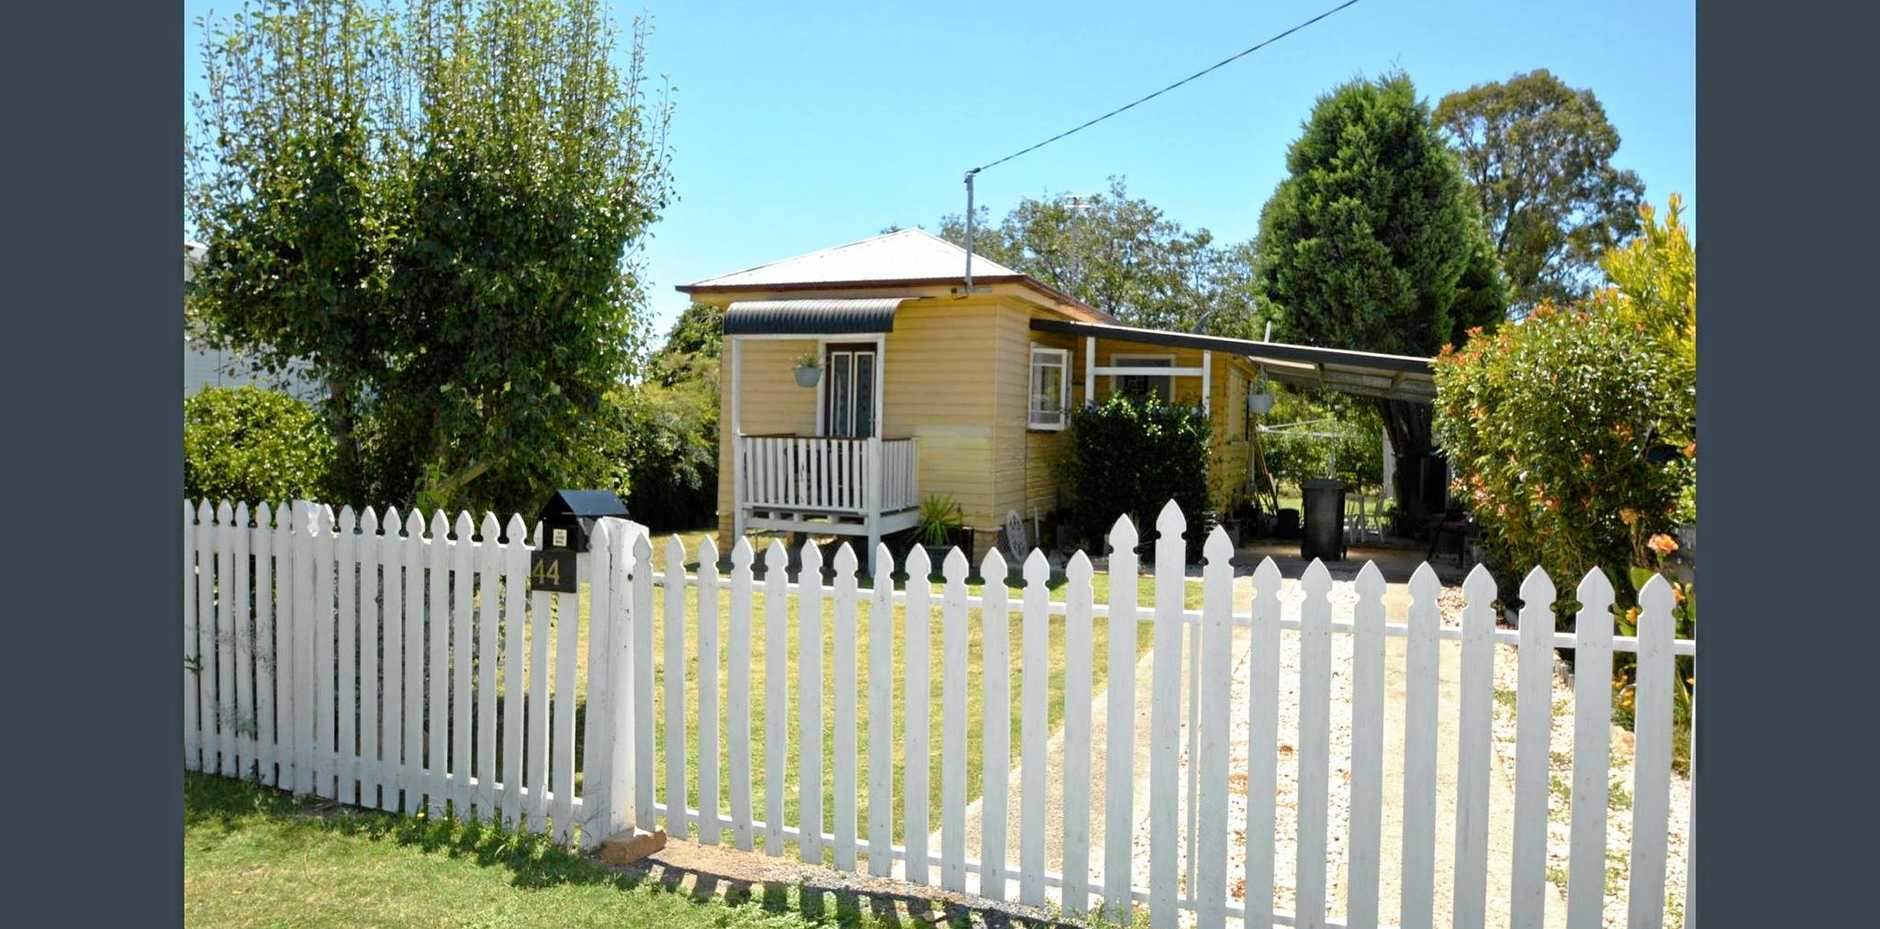 POCKET-SIZED HOUSE: The property in Warwick has one bedroom and two small decks.